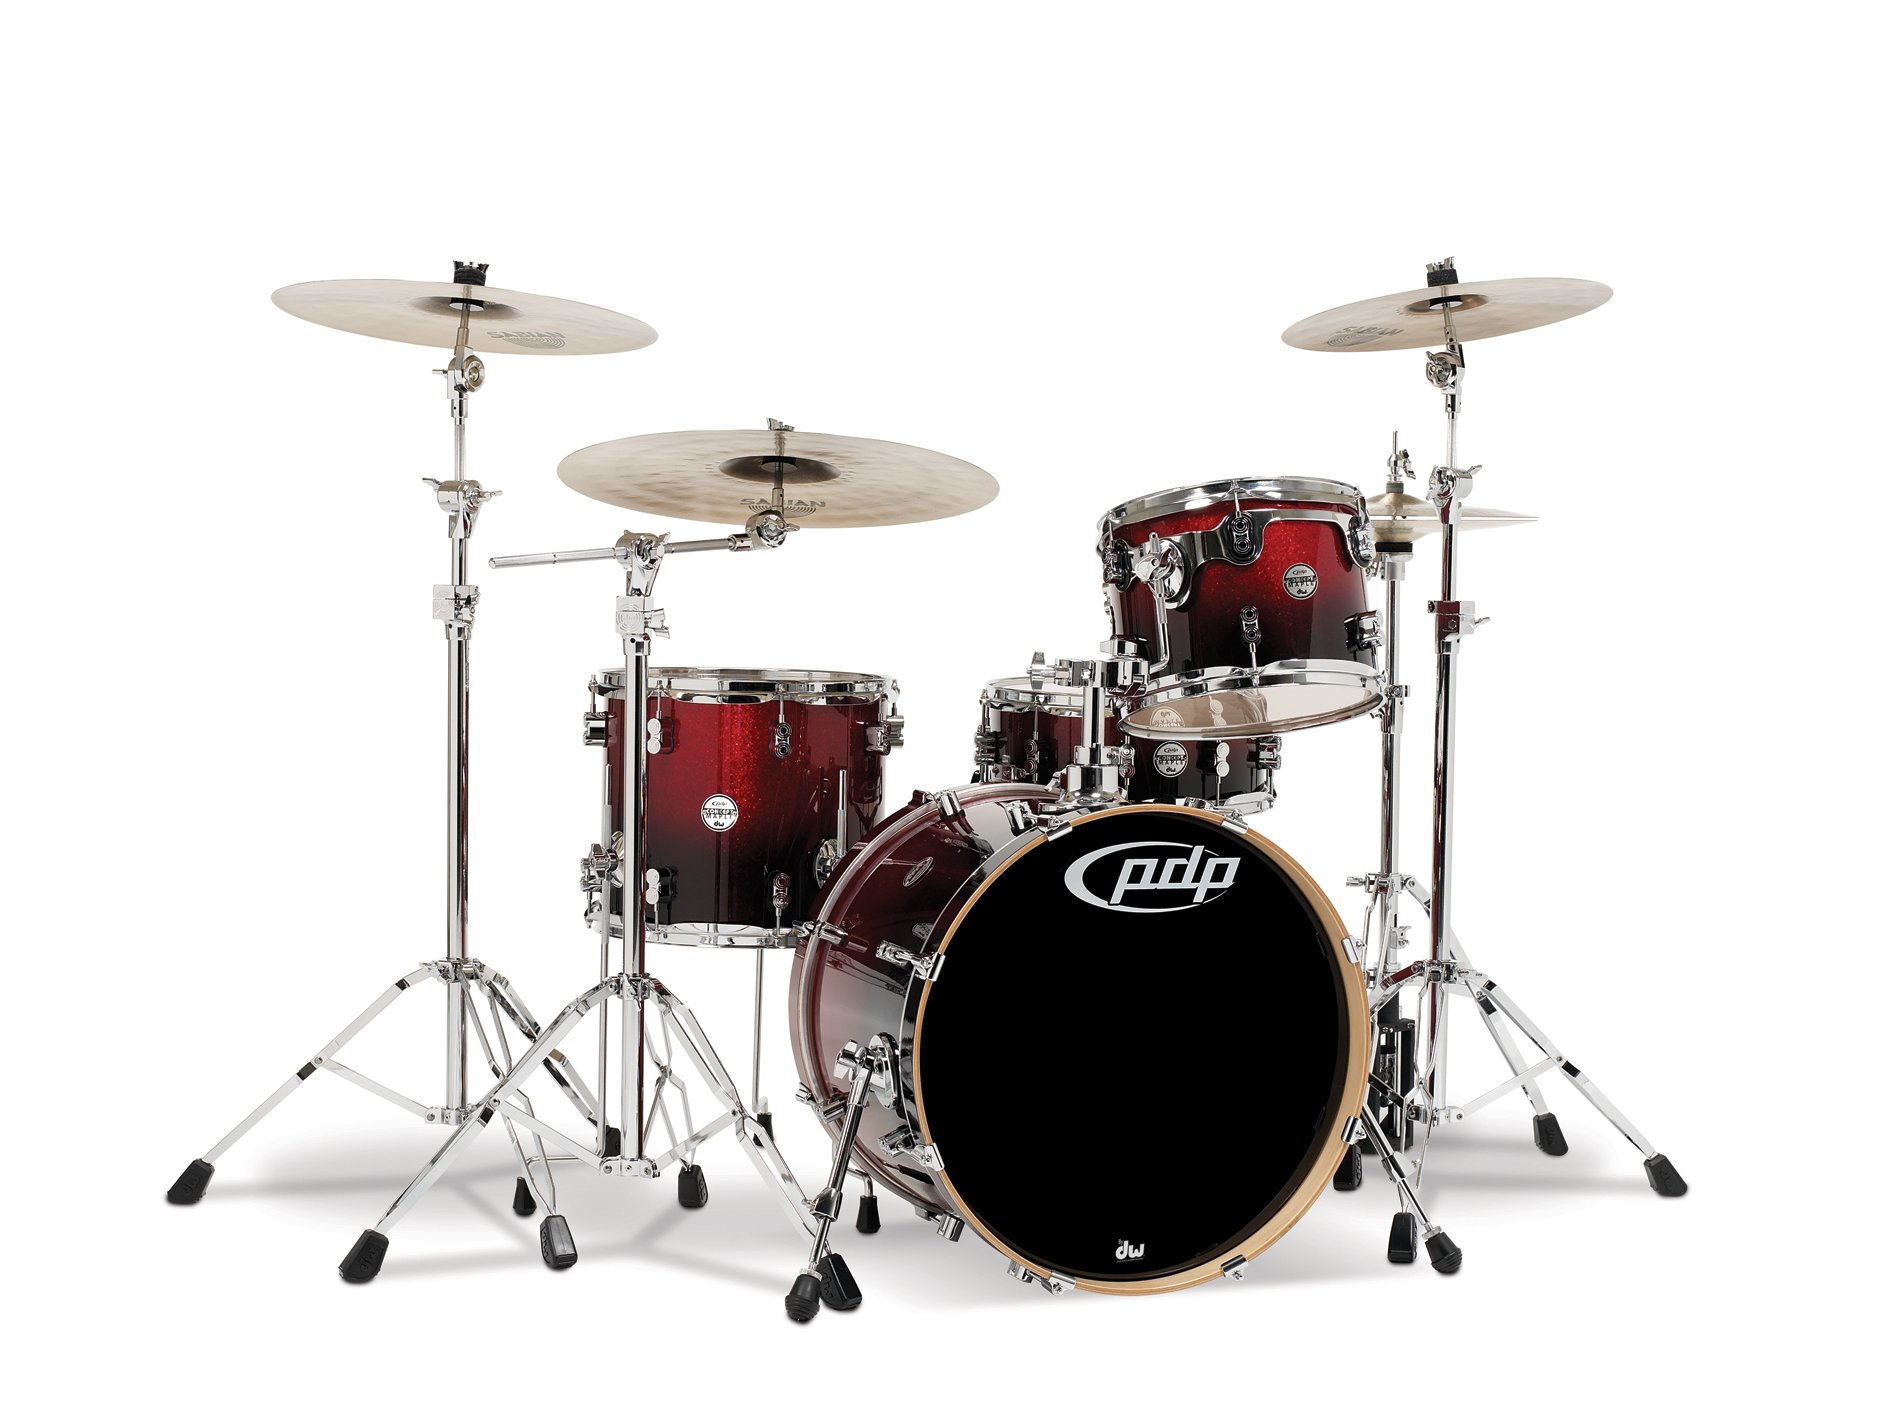 Pacific Drums PDCM2014RB 4-Piece Drumset with Chrome Hardware - Red to Black Fade